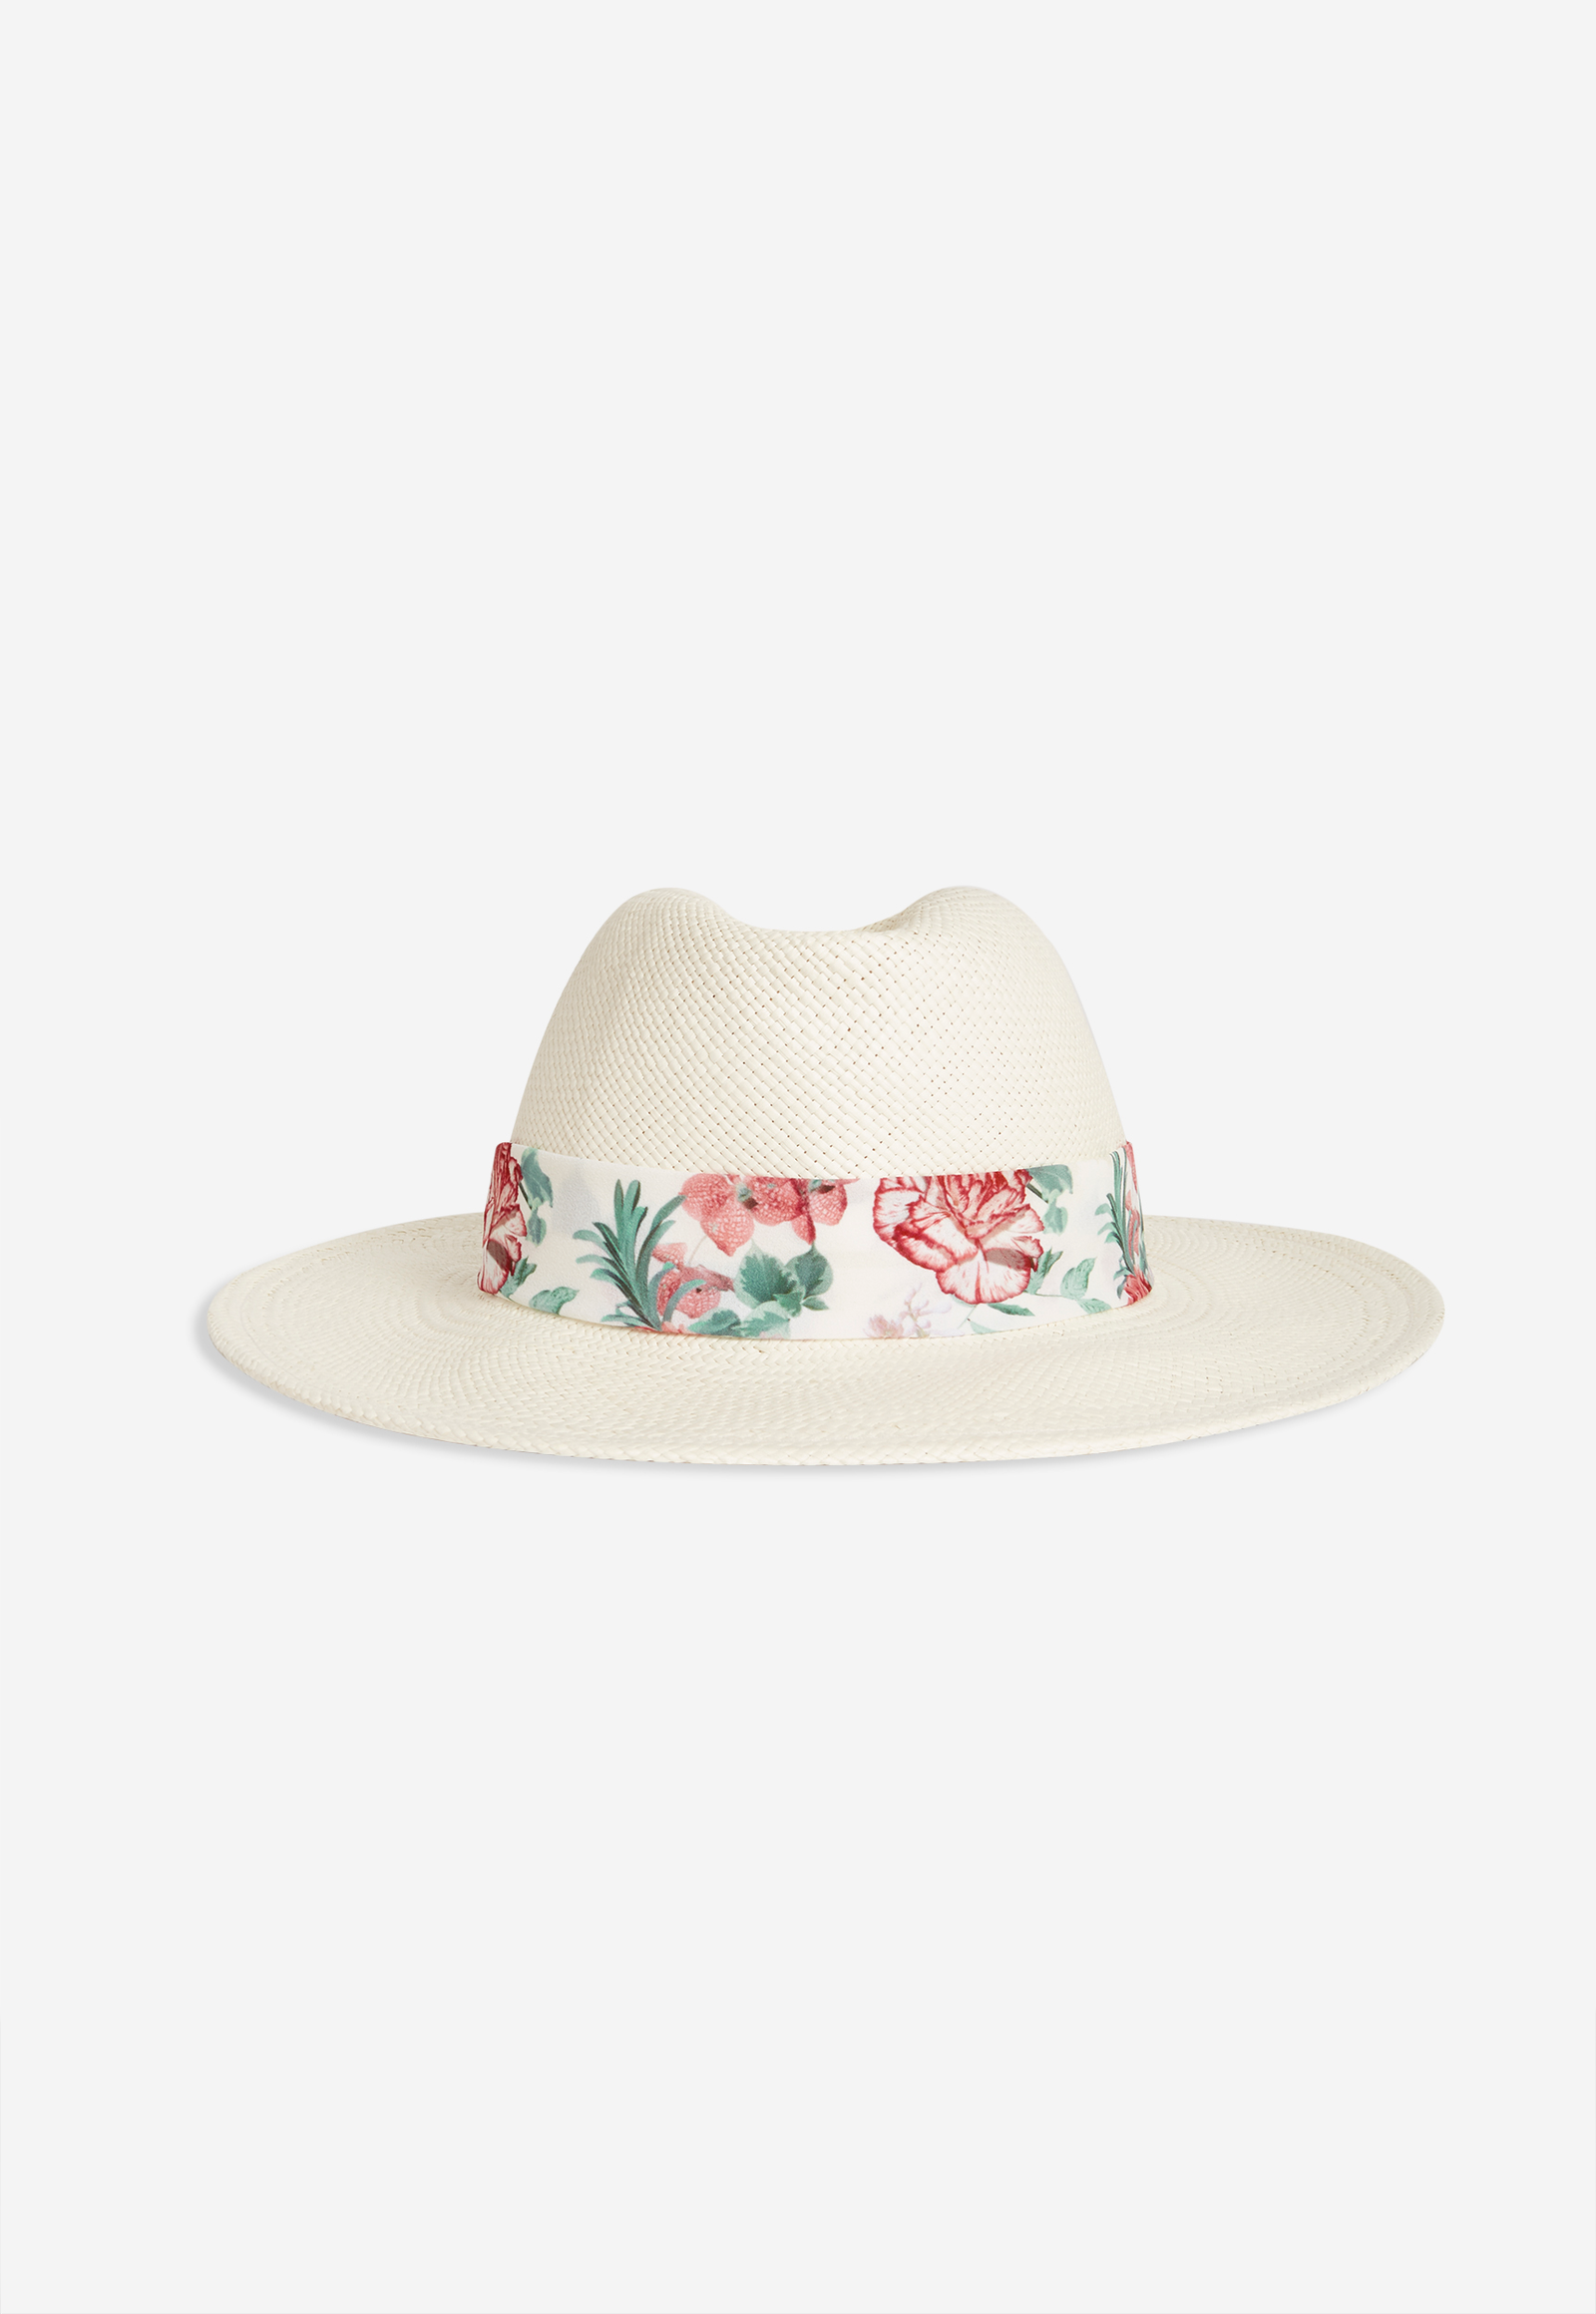 6 Shore Road Rosecliff Garden Panama Hat One Size - Summer 2018 Collection